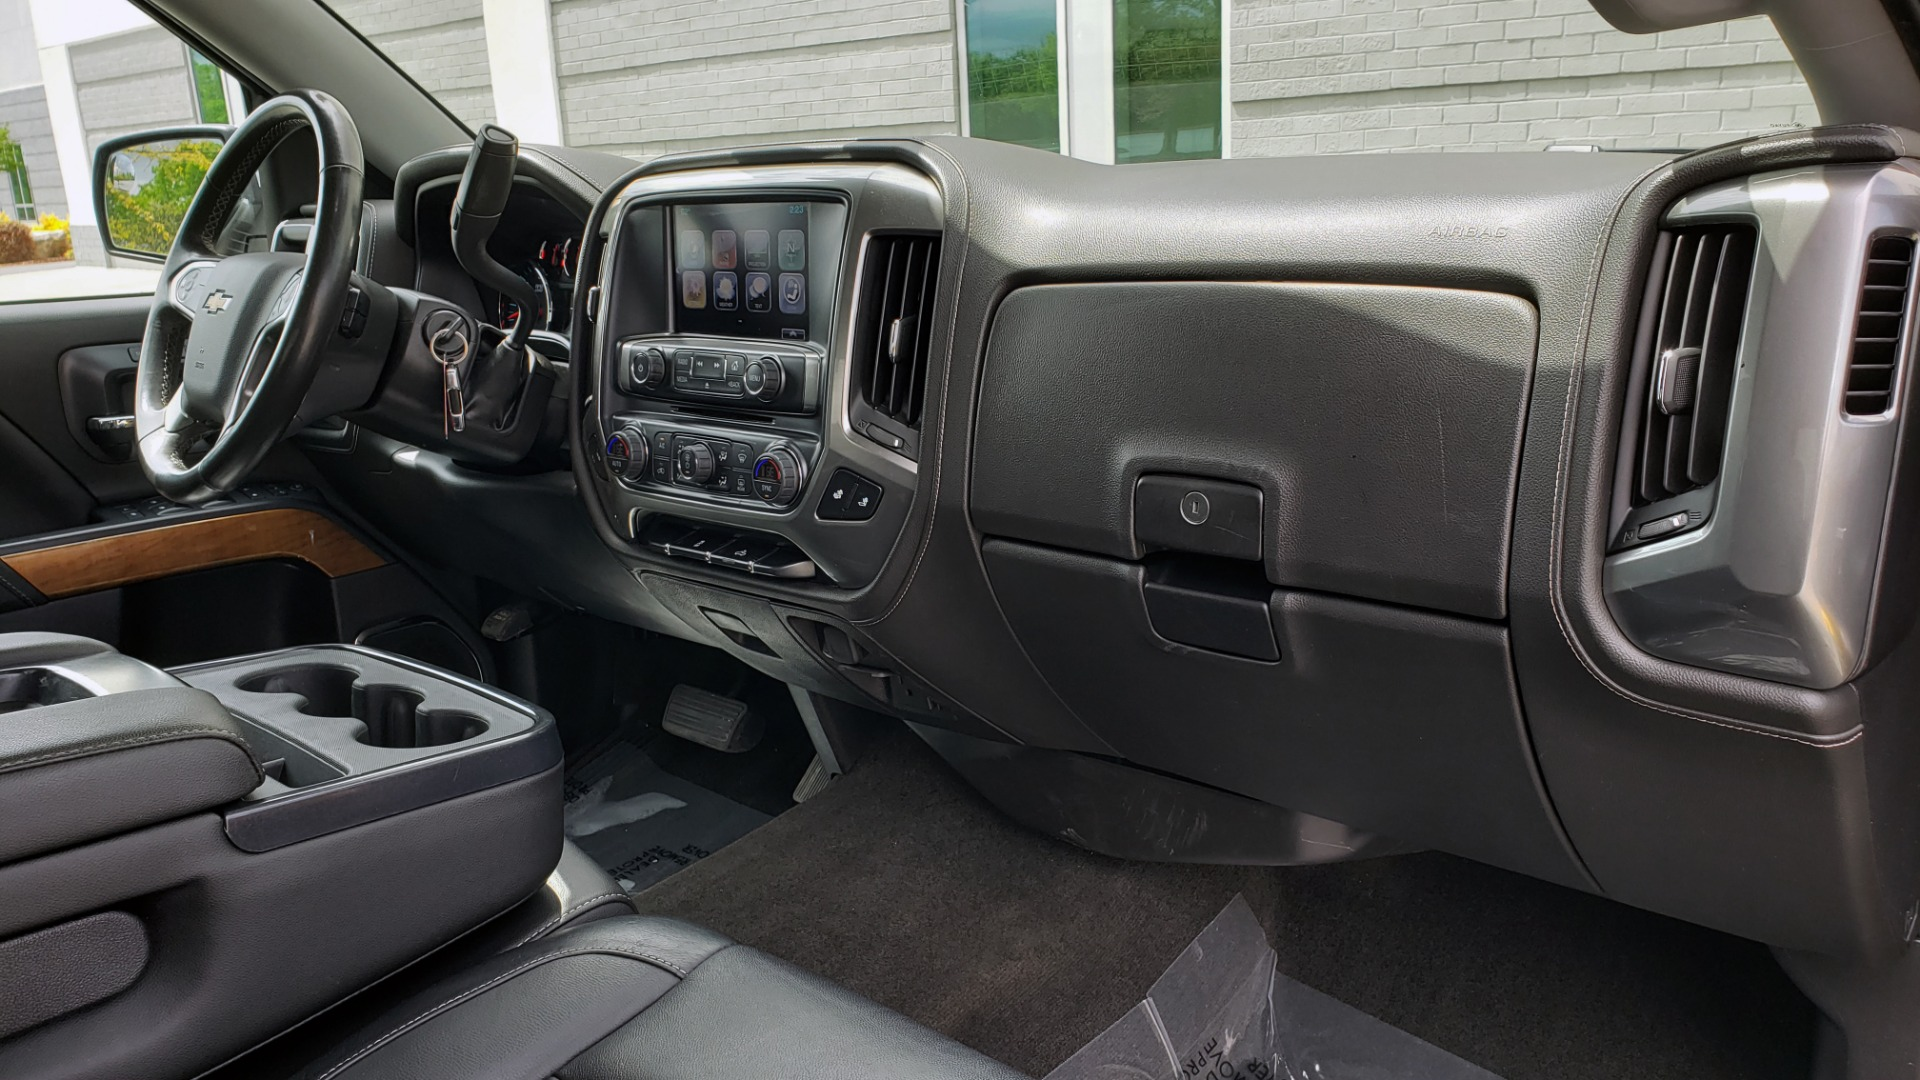 Used 2018 Chevrolet SILVERADO 1500 LTZ 1LZ / 5.3L V8 / 2WD / 6-SPD AUTO / DOUBLECAB / REARVIEW for sale Sold at Formula Imports in Charlotte NC 28227 63